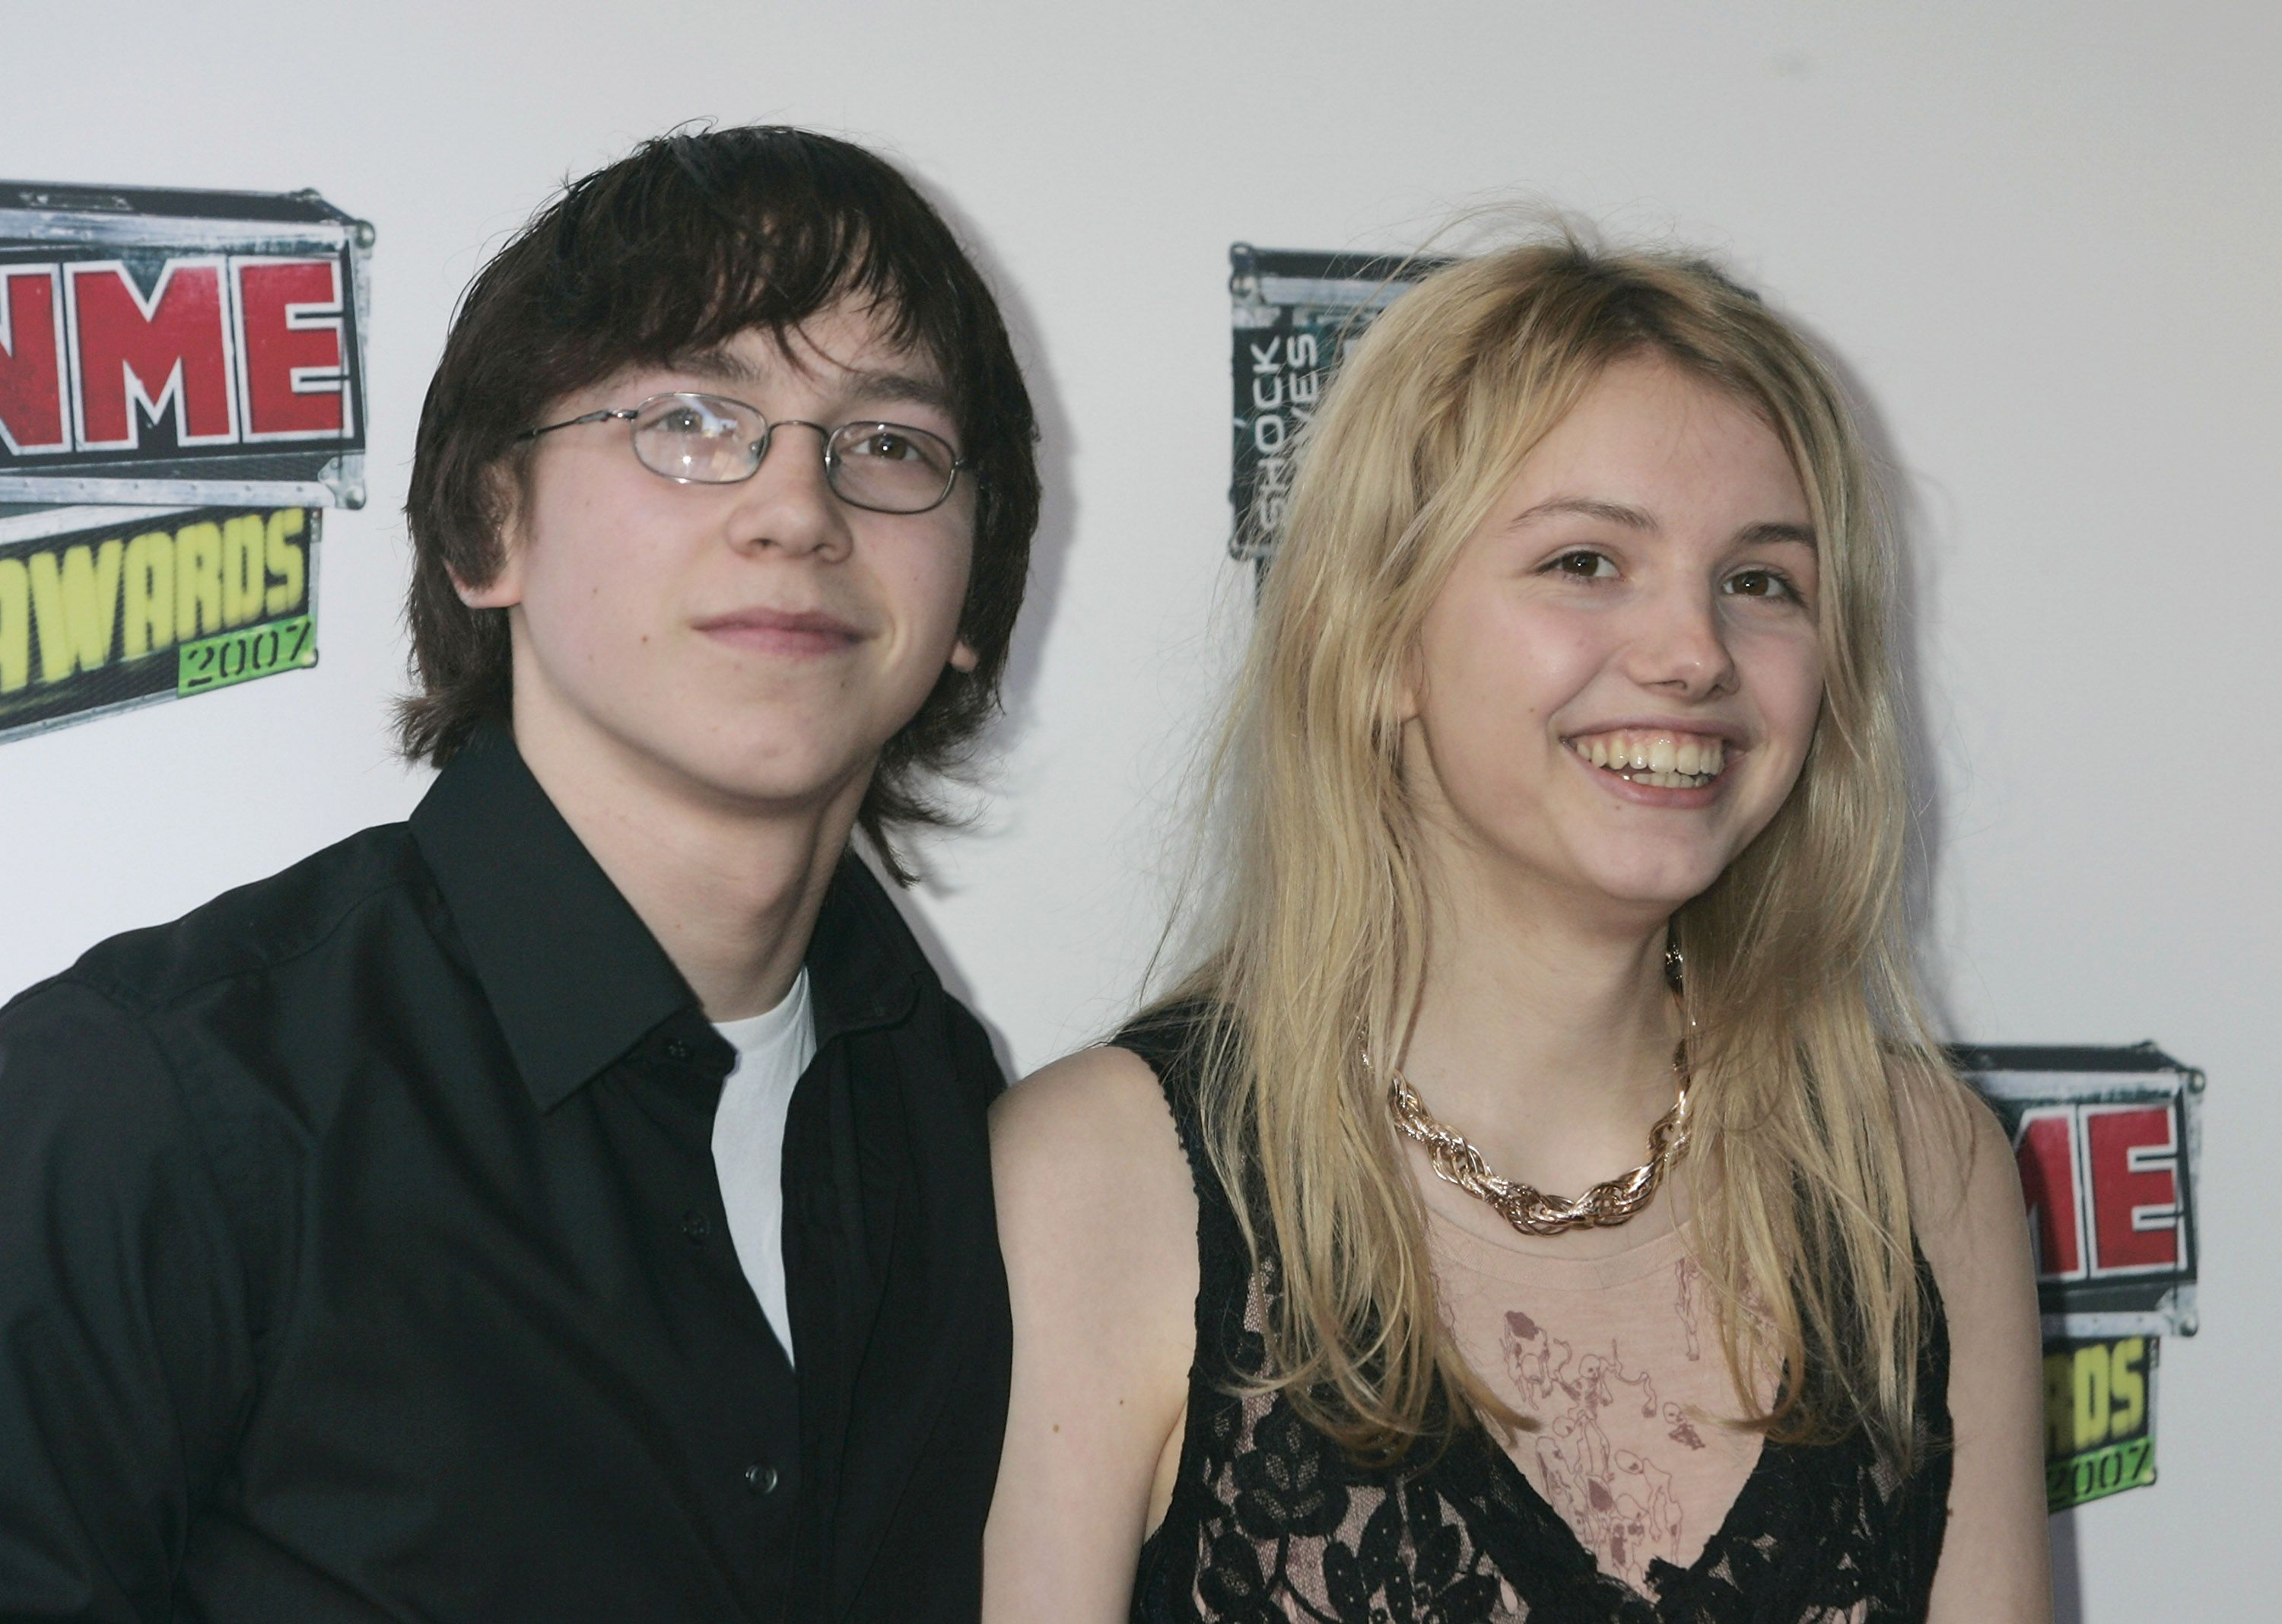 mike bailey and hannah murray as skins perfect couple sid